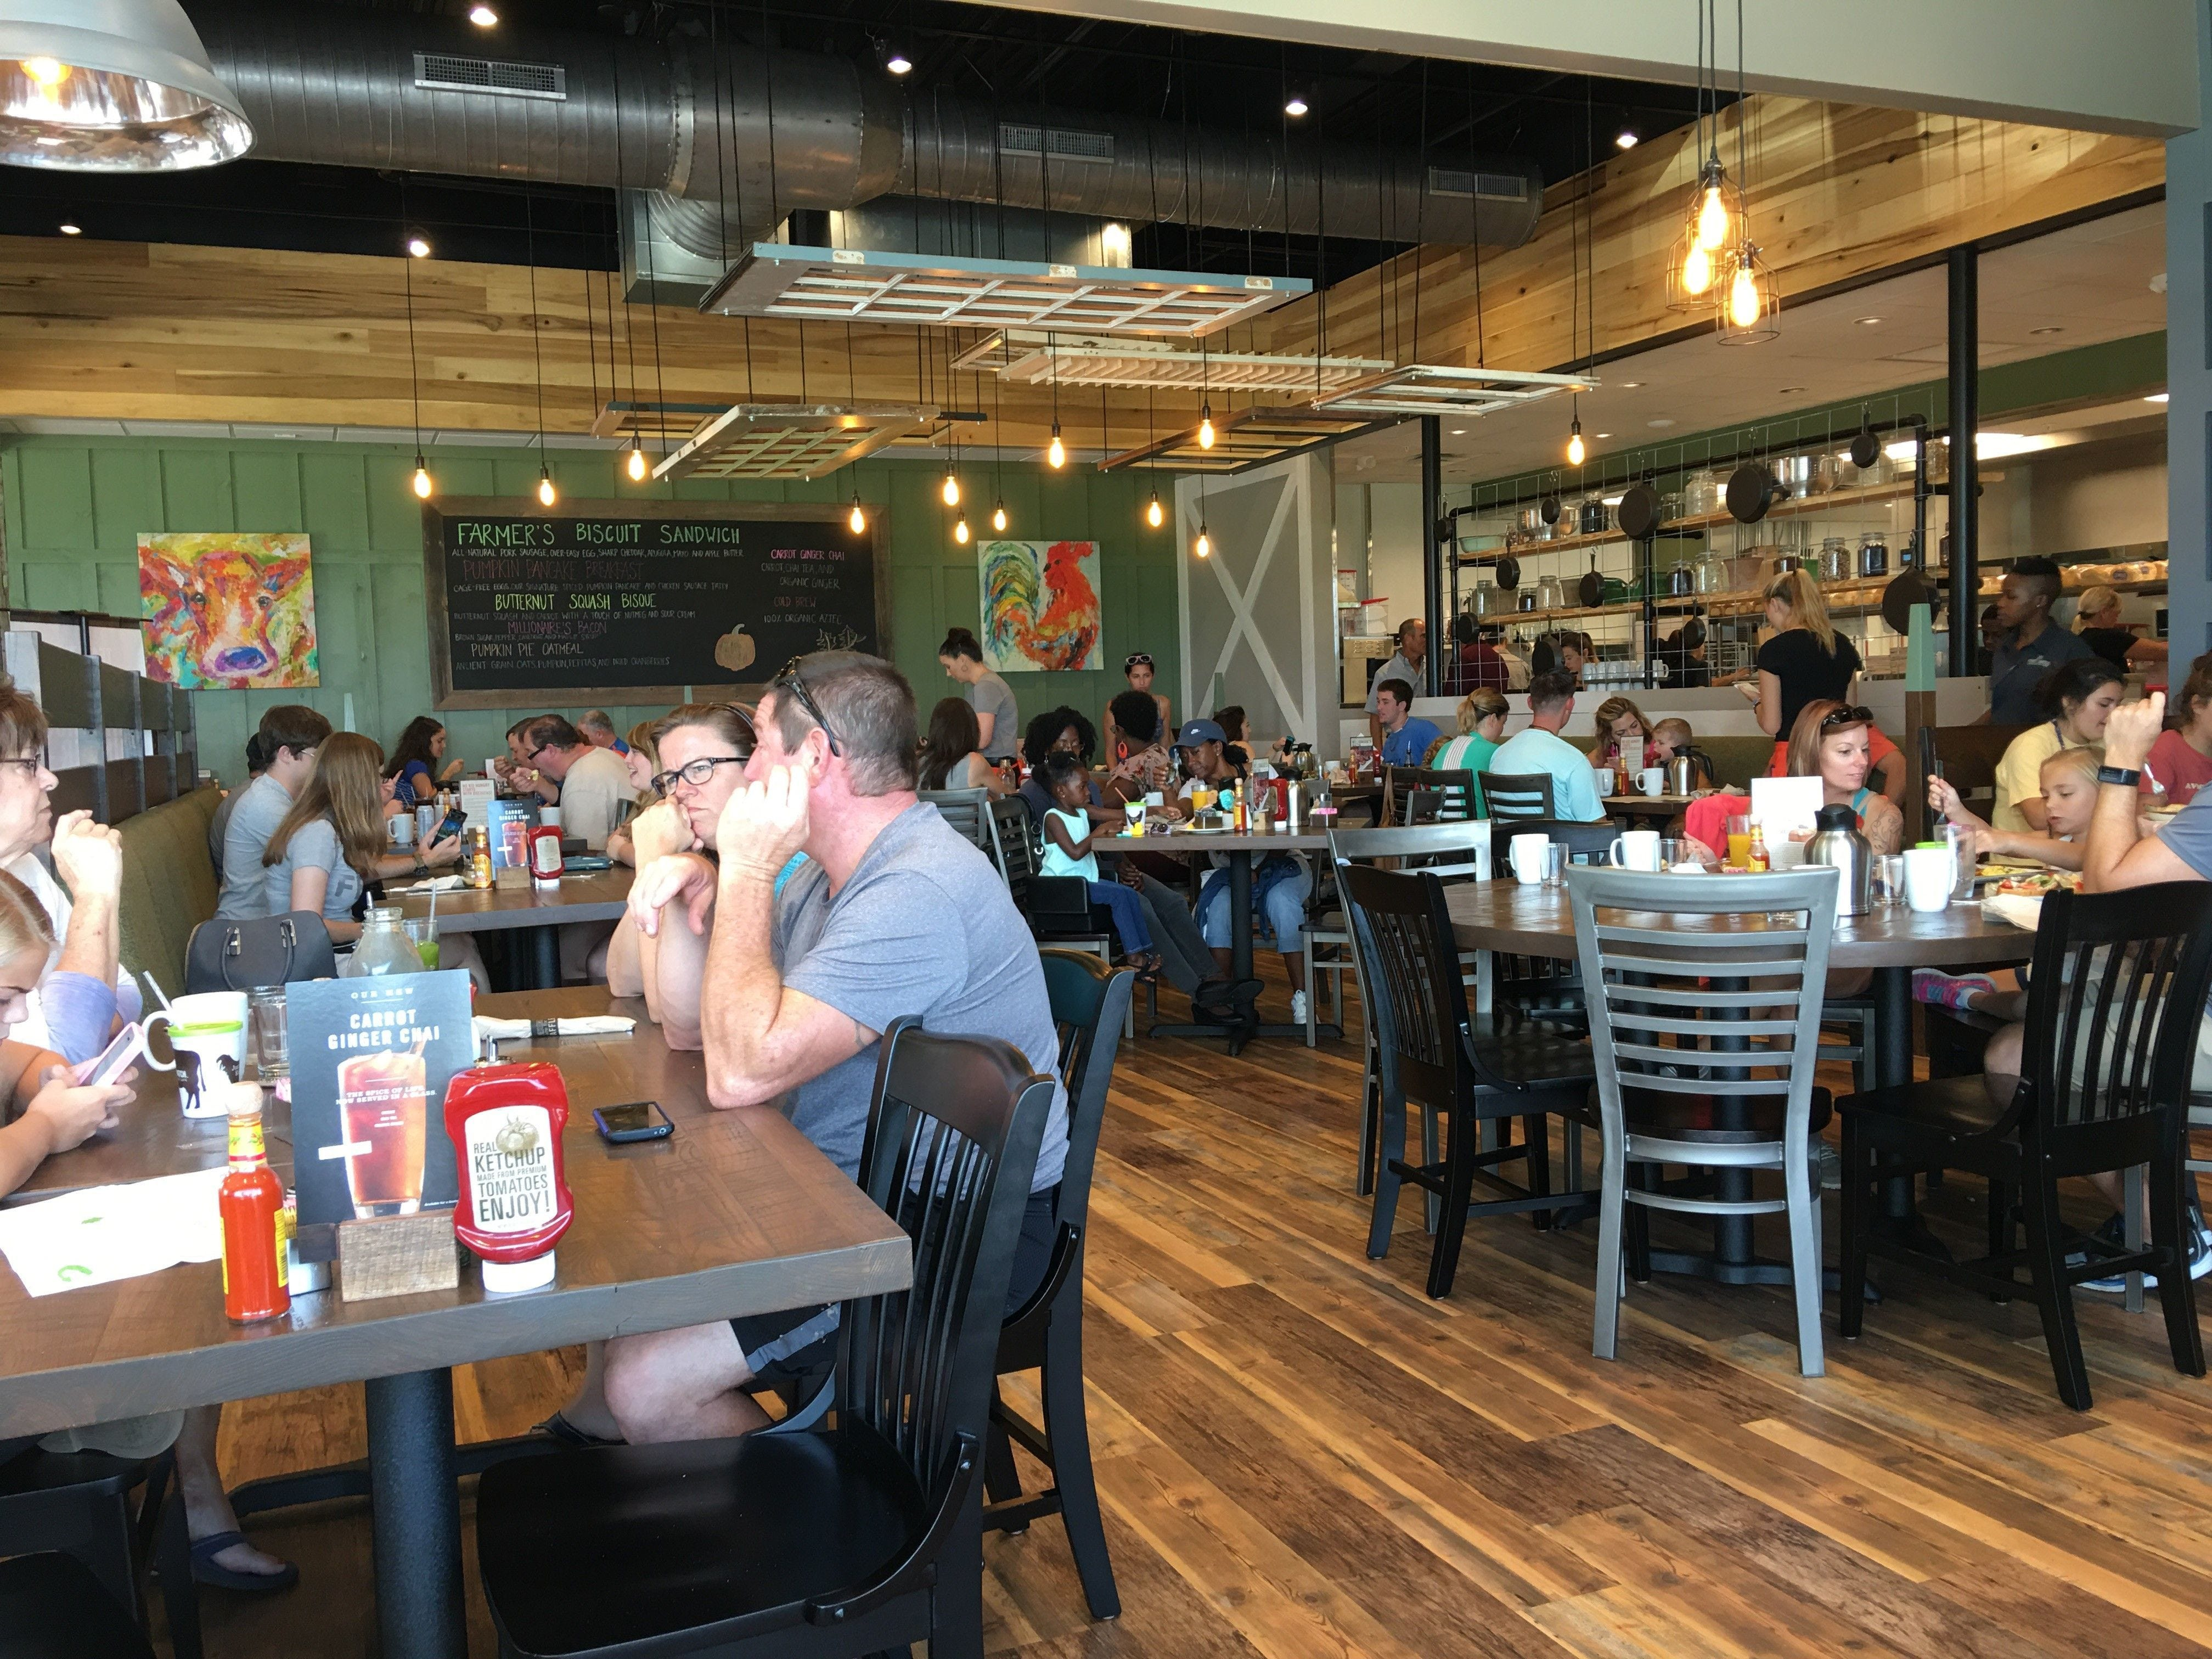 OPEN: First Watch has become a popular spot for breakfast in Viera.